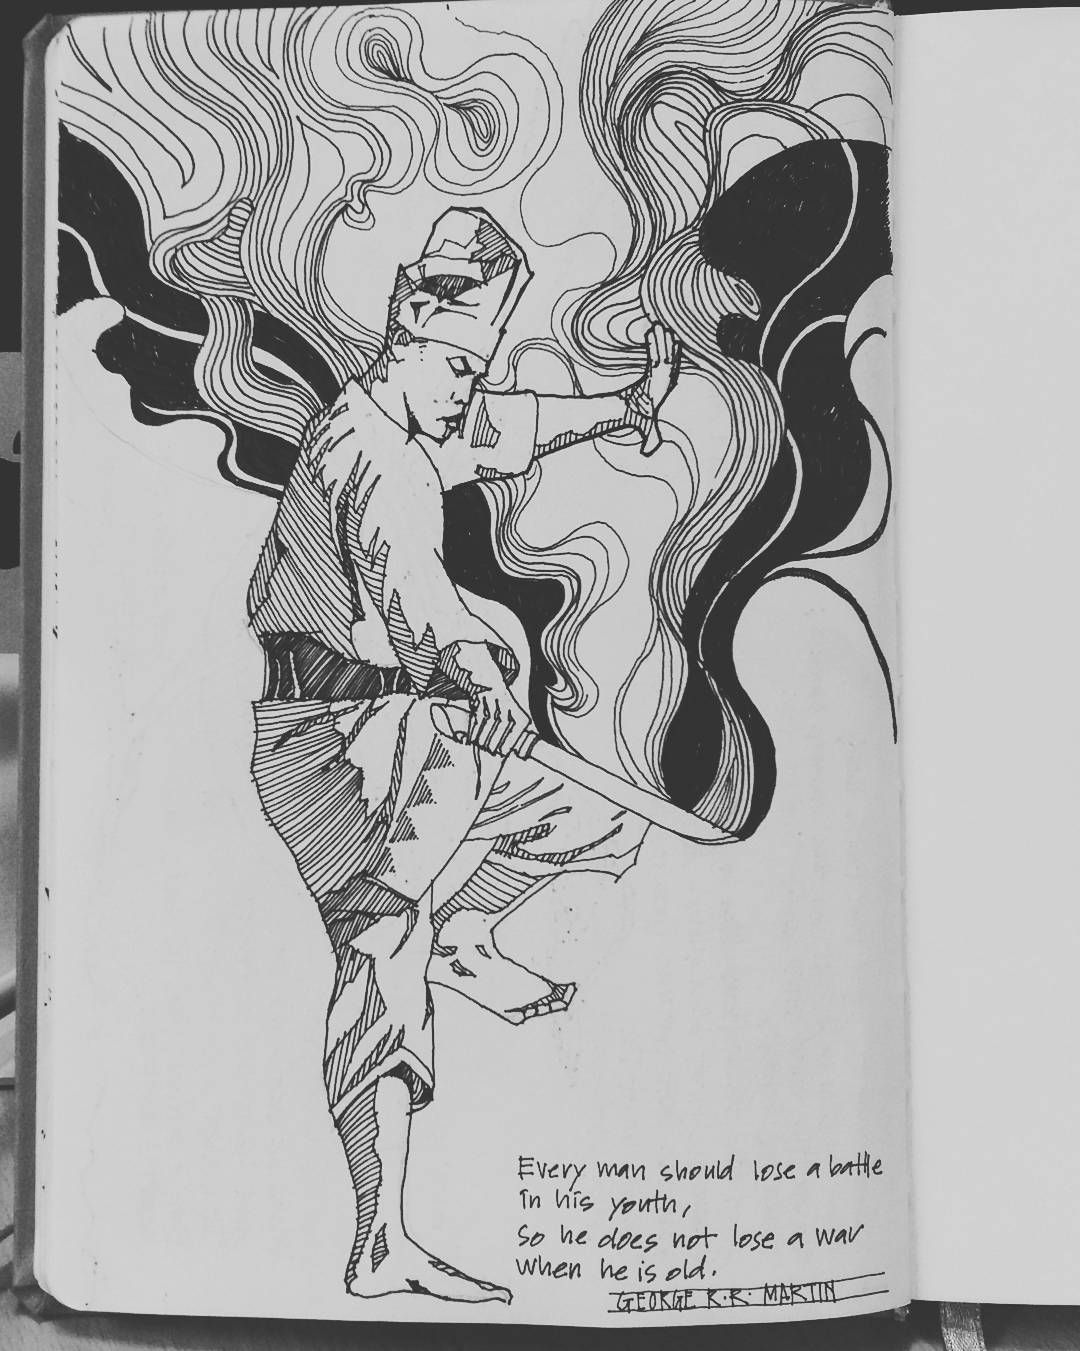 Malay Warrior And Horses In 2018 Pinterest Drawings Damn I Love Indonesia Kaos Anak Born For White 6 7 Tahun